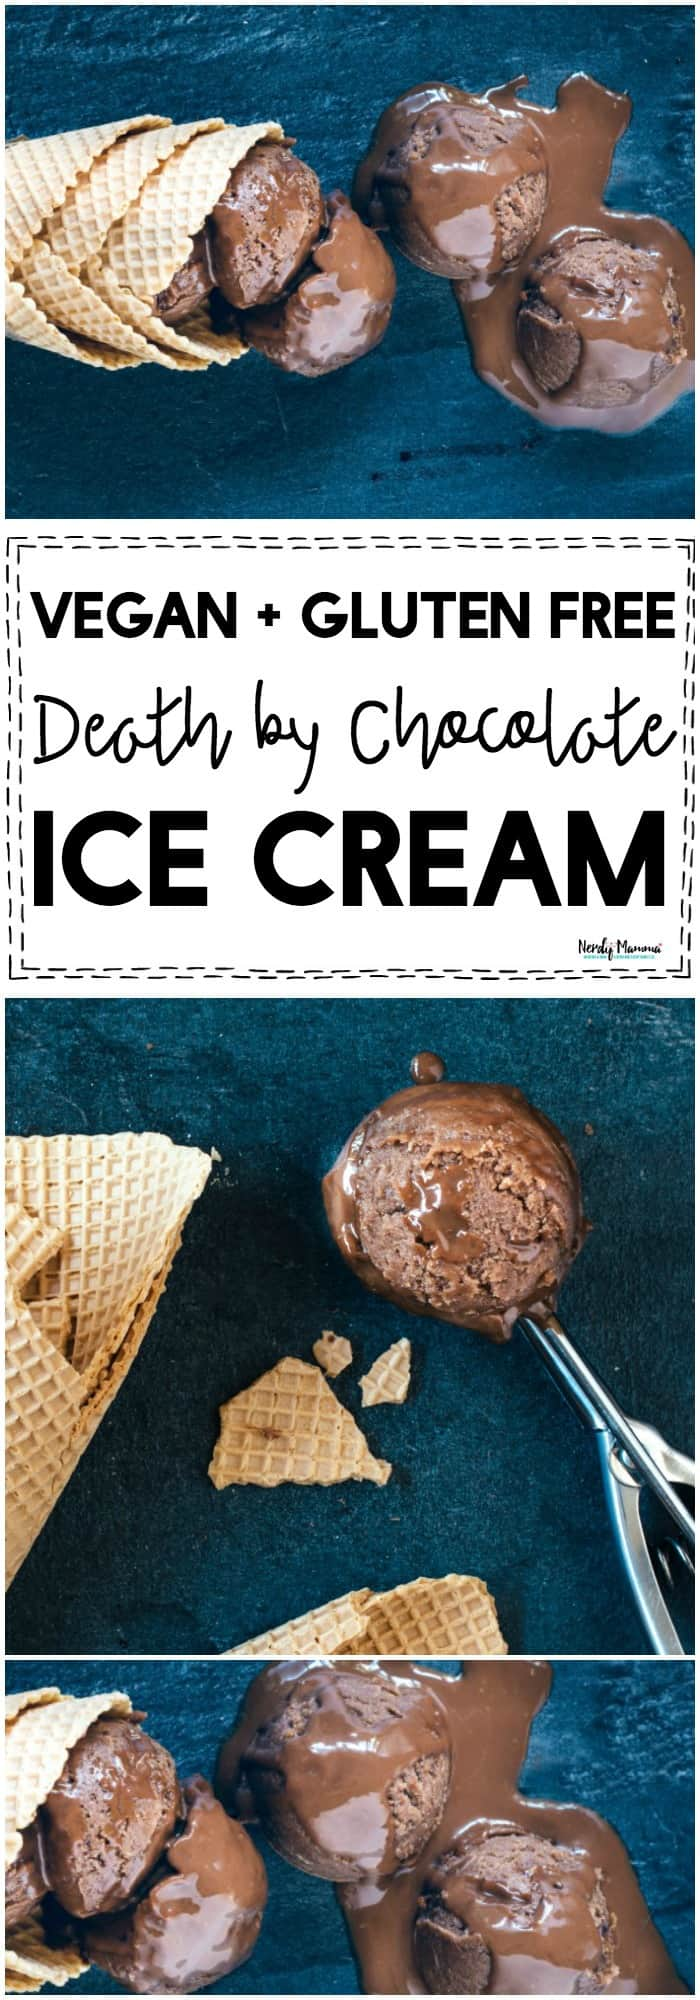 OMG FINALLY! A gluten free + vegan death by chocolate ice cream recipe that ACTUALLY takes delicious!!